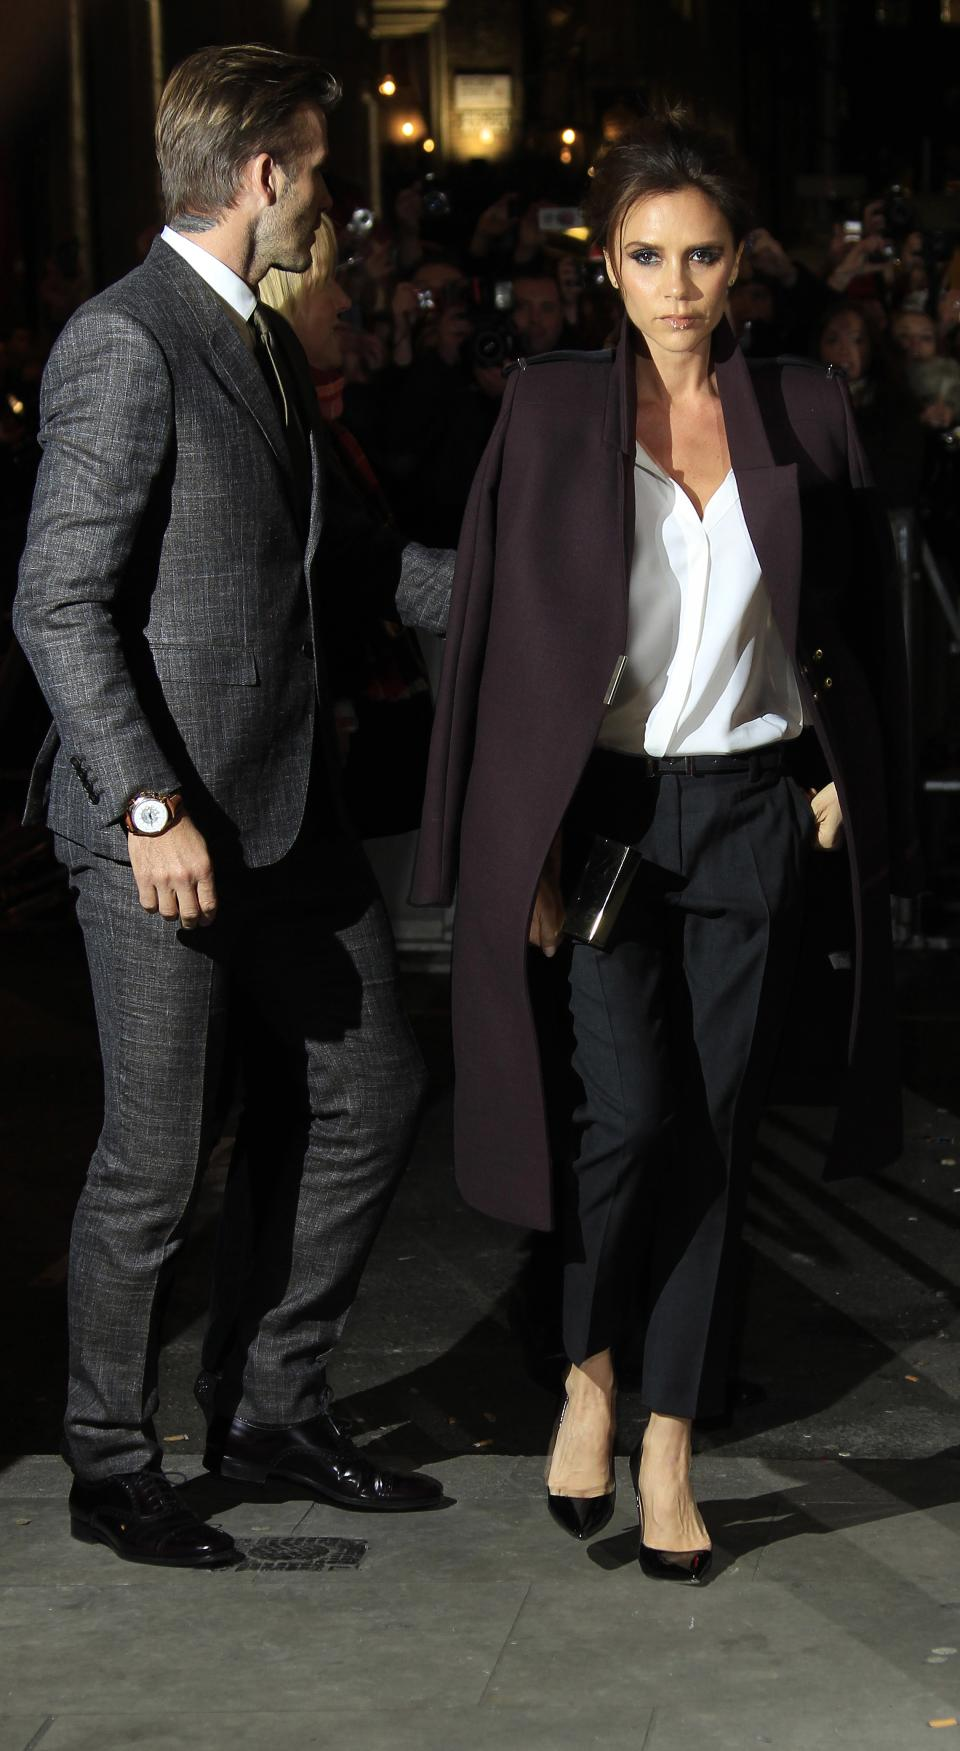 Victoria Beckham, right, and David Beckham arrive for press viewing of Viva Forever!, a musical based on the songs of the Spice Girls, at a theater in central London, Tuesday, Dec. 11, 2012. (Photo by Joel Ryan/Invision/AP)